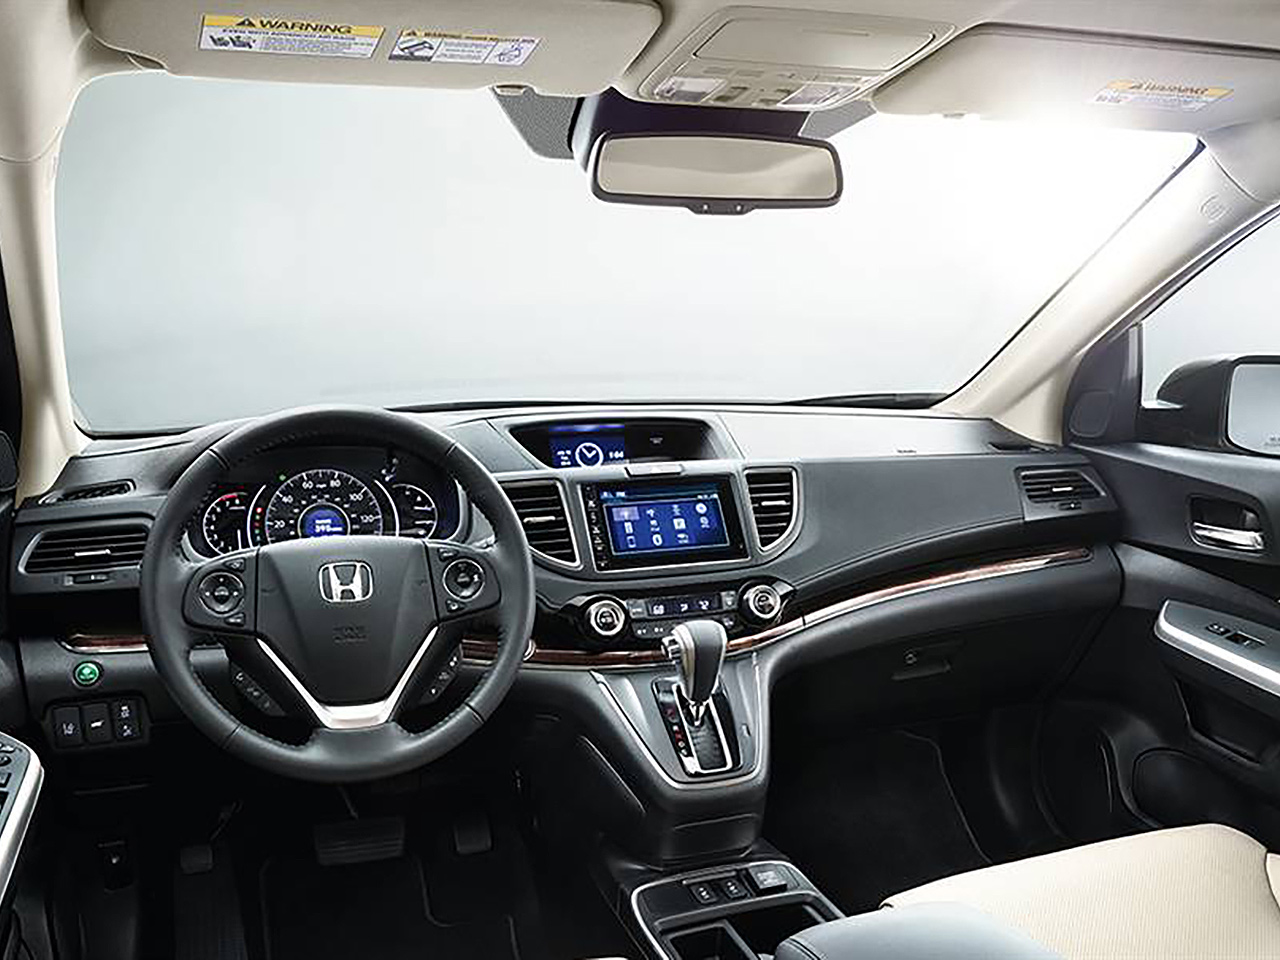 Interior View Of 2016 Honda CR-V in Los Angeles